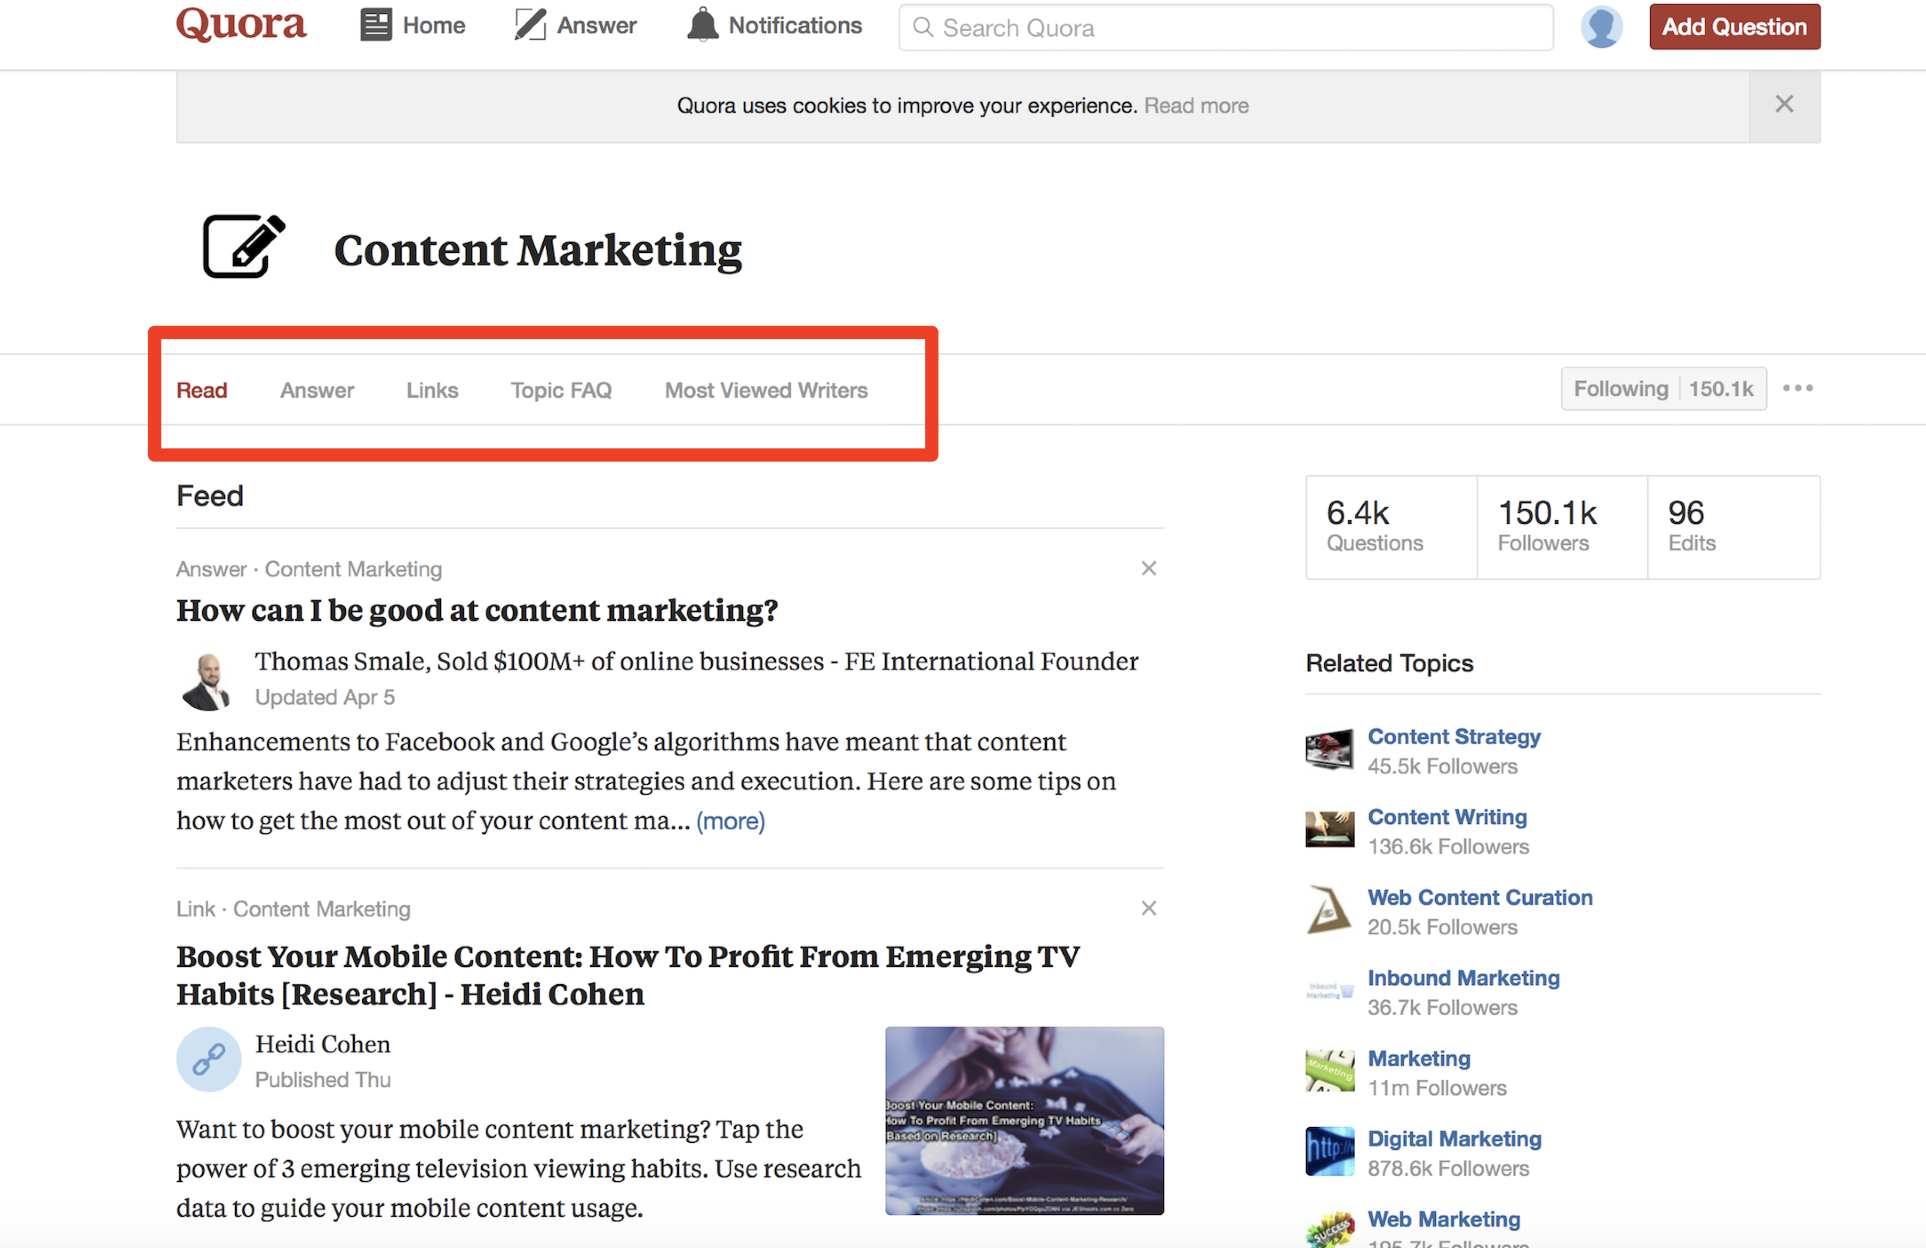 blog ideas content marketing quora